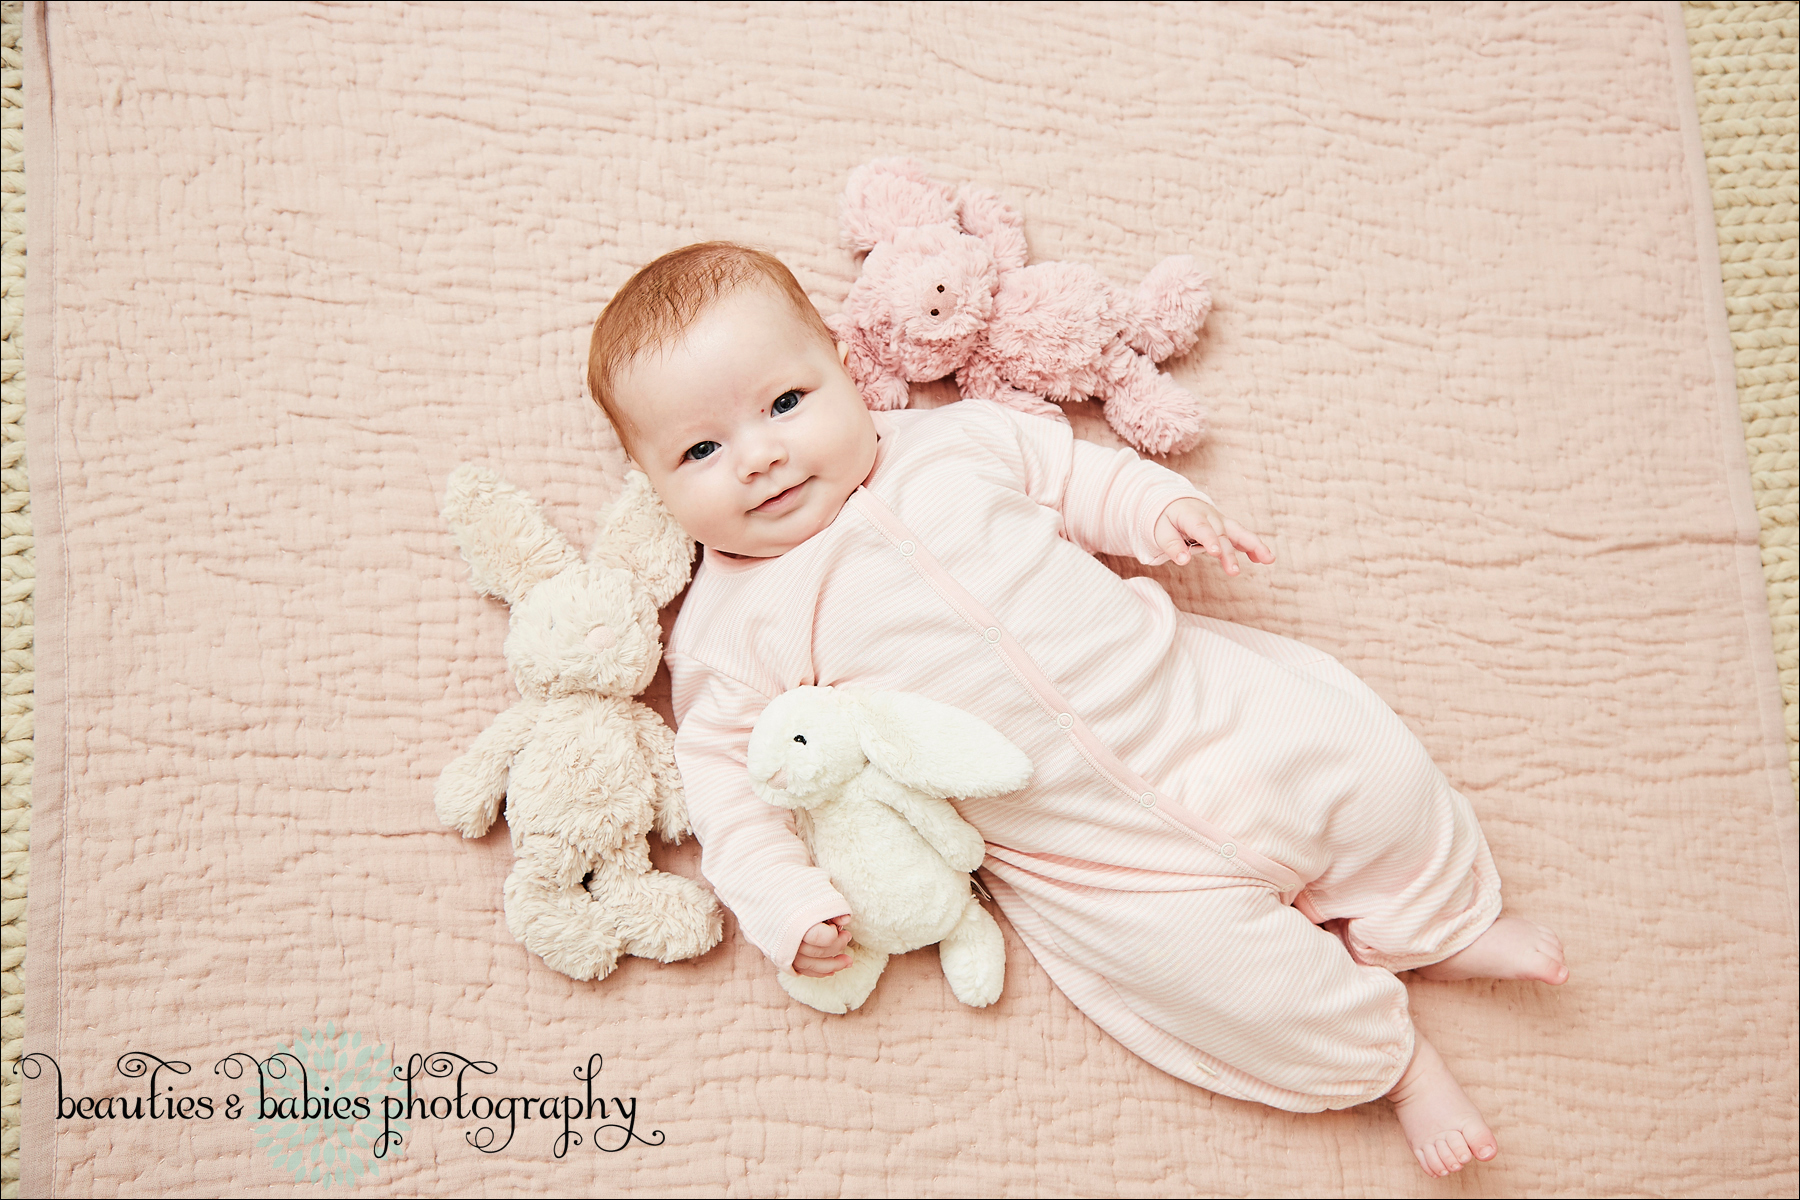 Baby clothing company photographer Los Angeles commercial photography baby and kids clothes